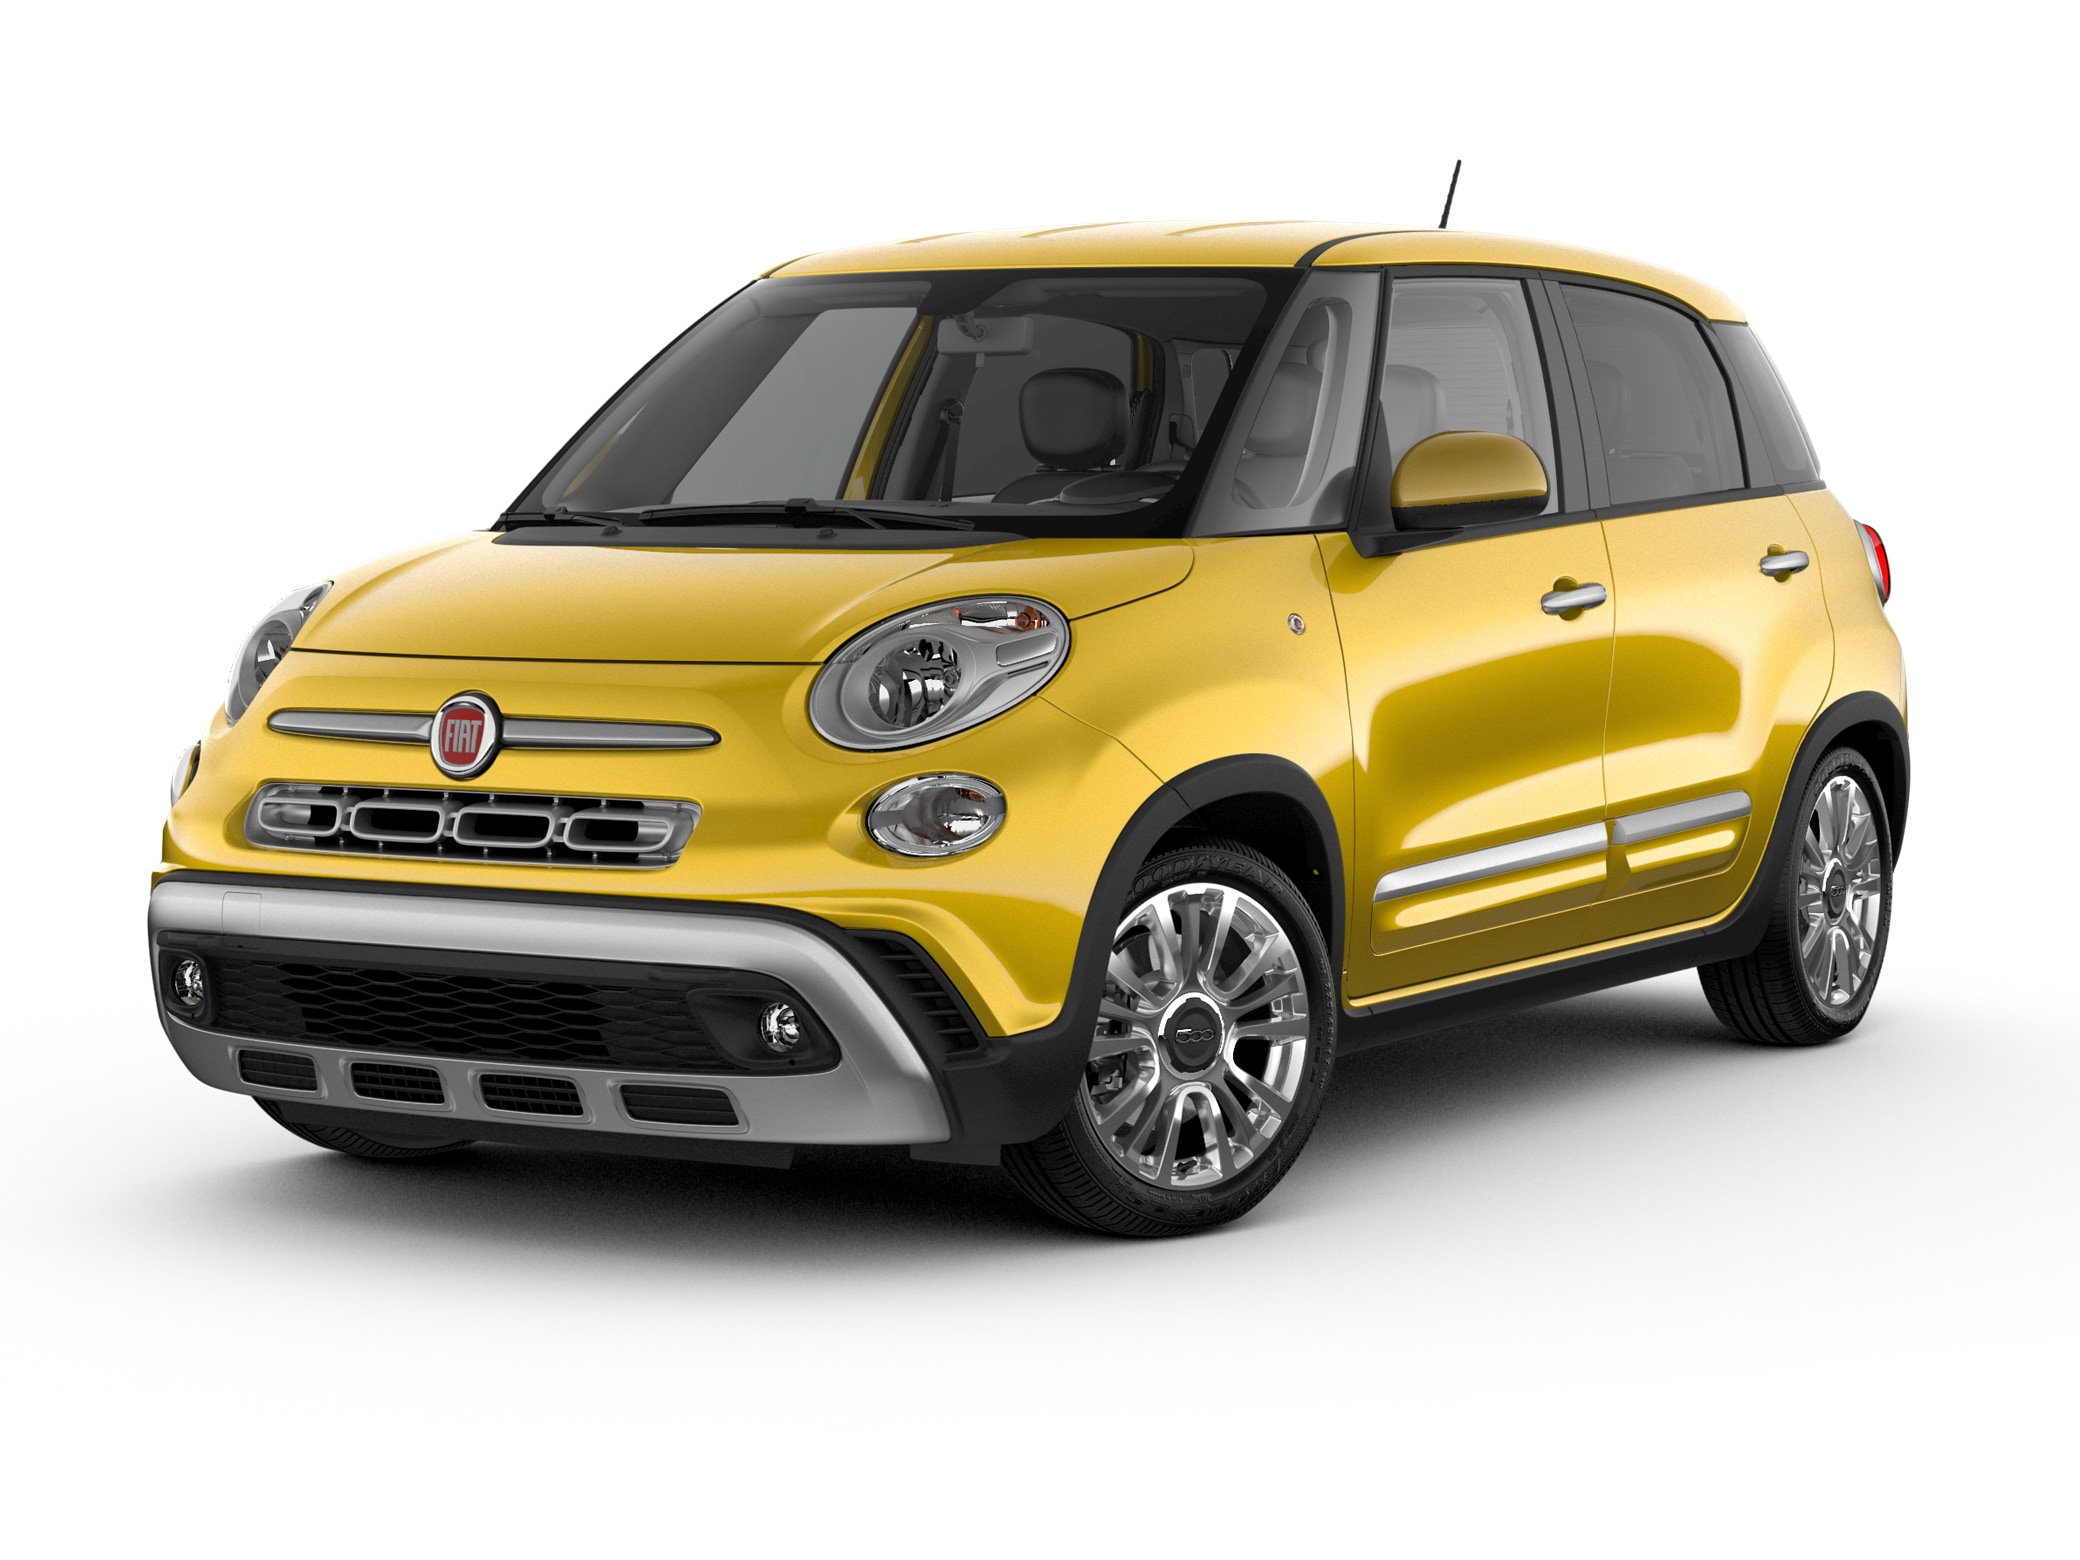 2019 fiat 500l for sale in eureka ca lithia chrysler. Black Bedroom Furniture Sets. Home Design Ideas